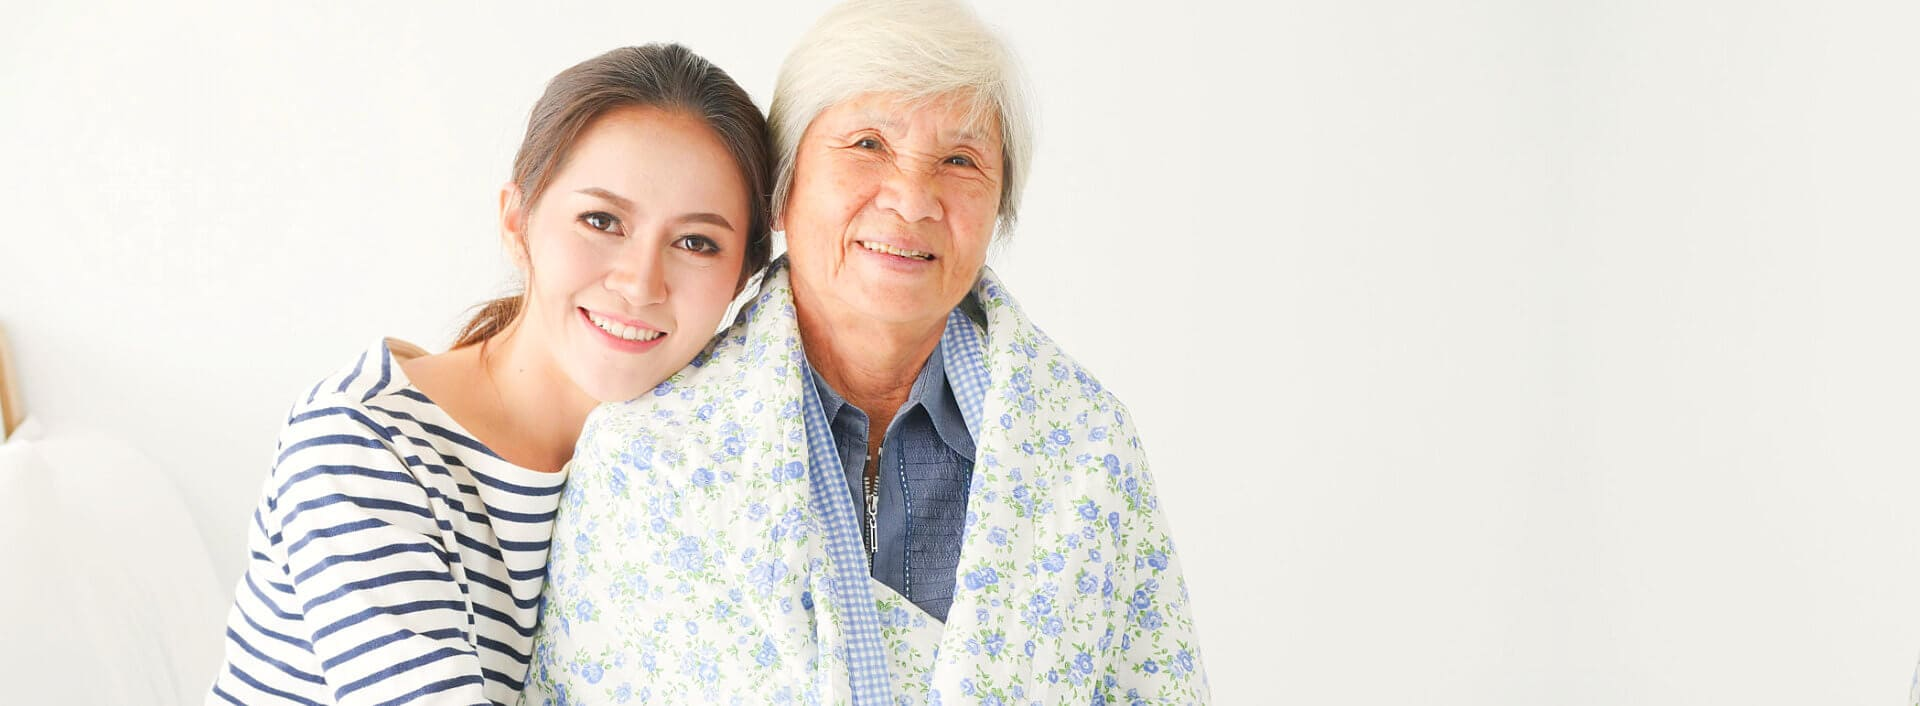 portrait of caregiver and senior woman smiling